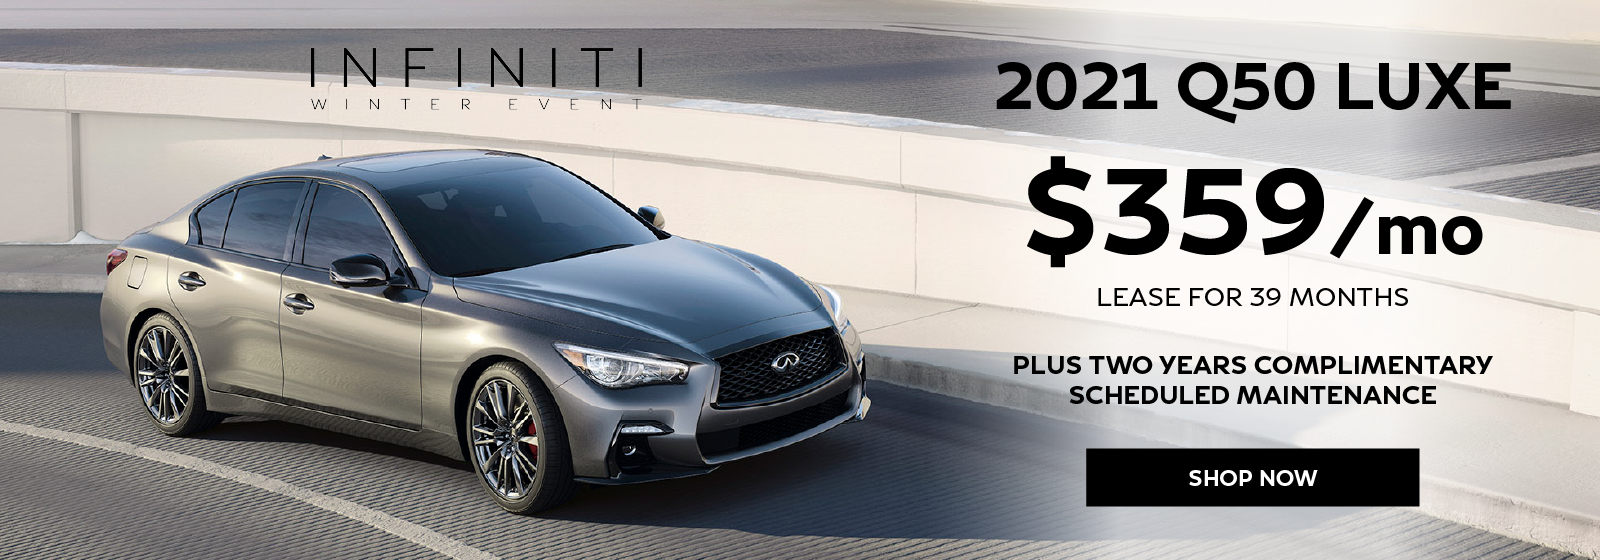 Well-qualified lessees can lease a new 2021 INFINITI Q50 LUXE for $359 per month for 39 months plus get two years complimentary scheduled maintenance. Click to view inventory.